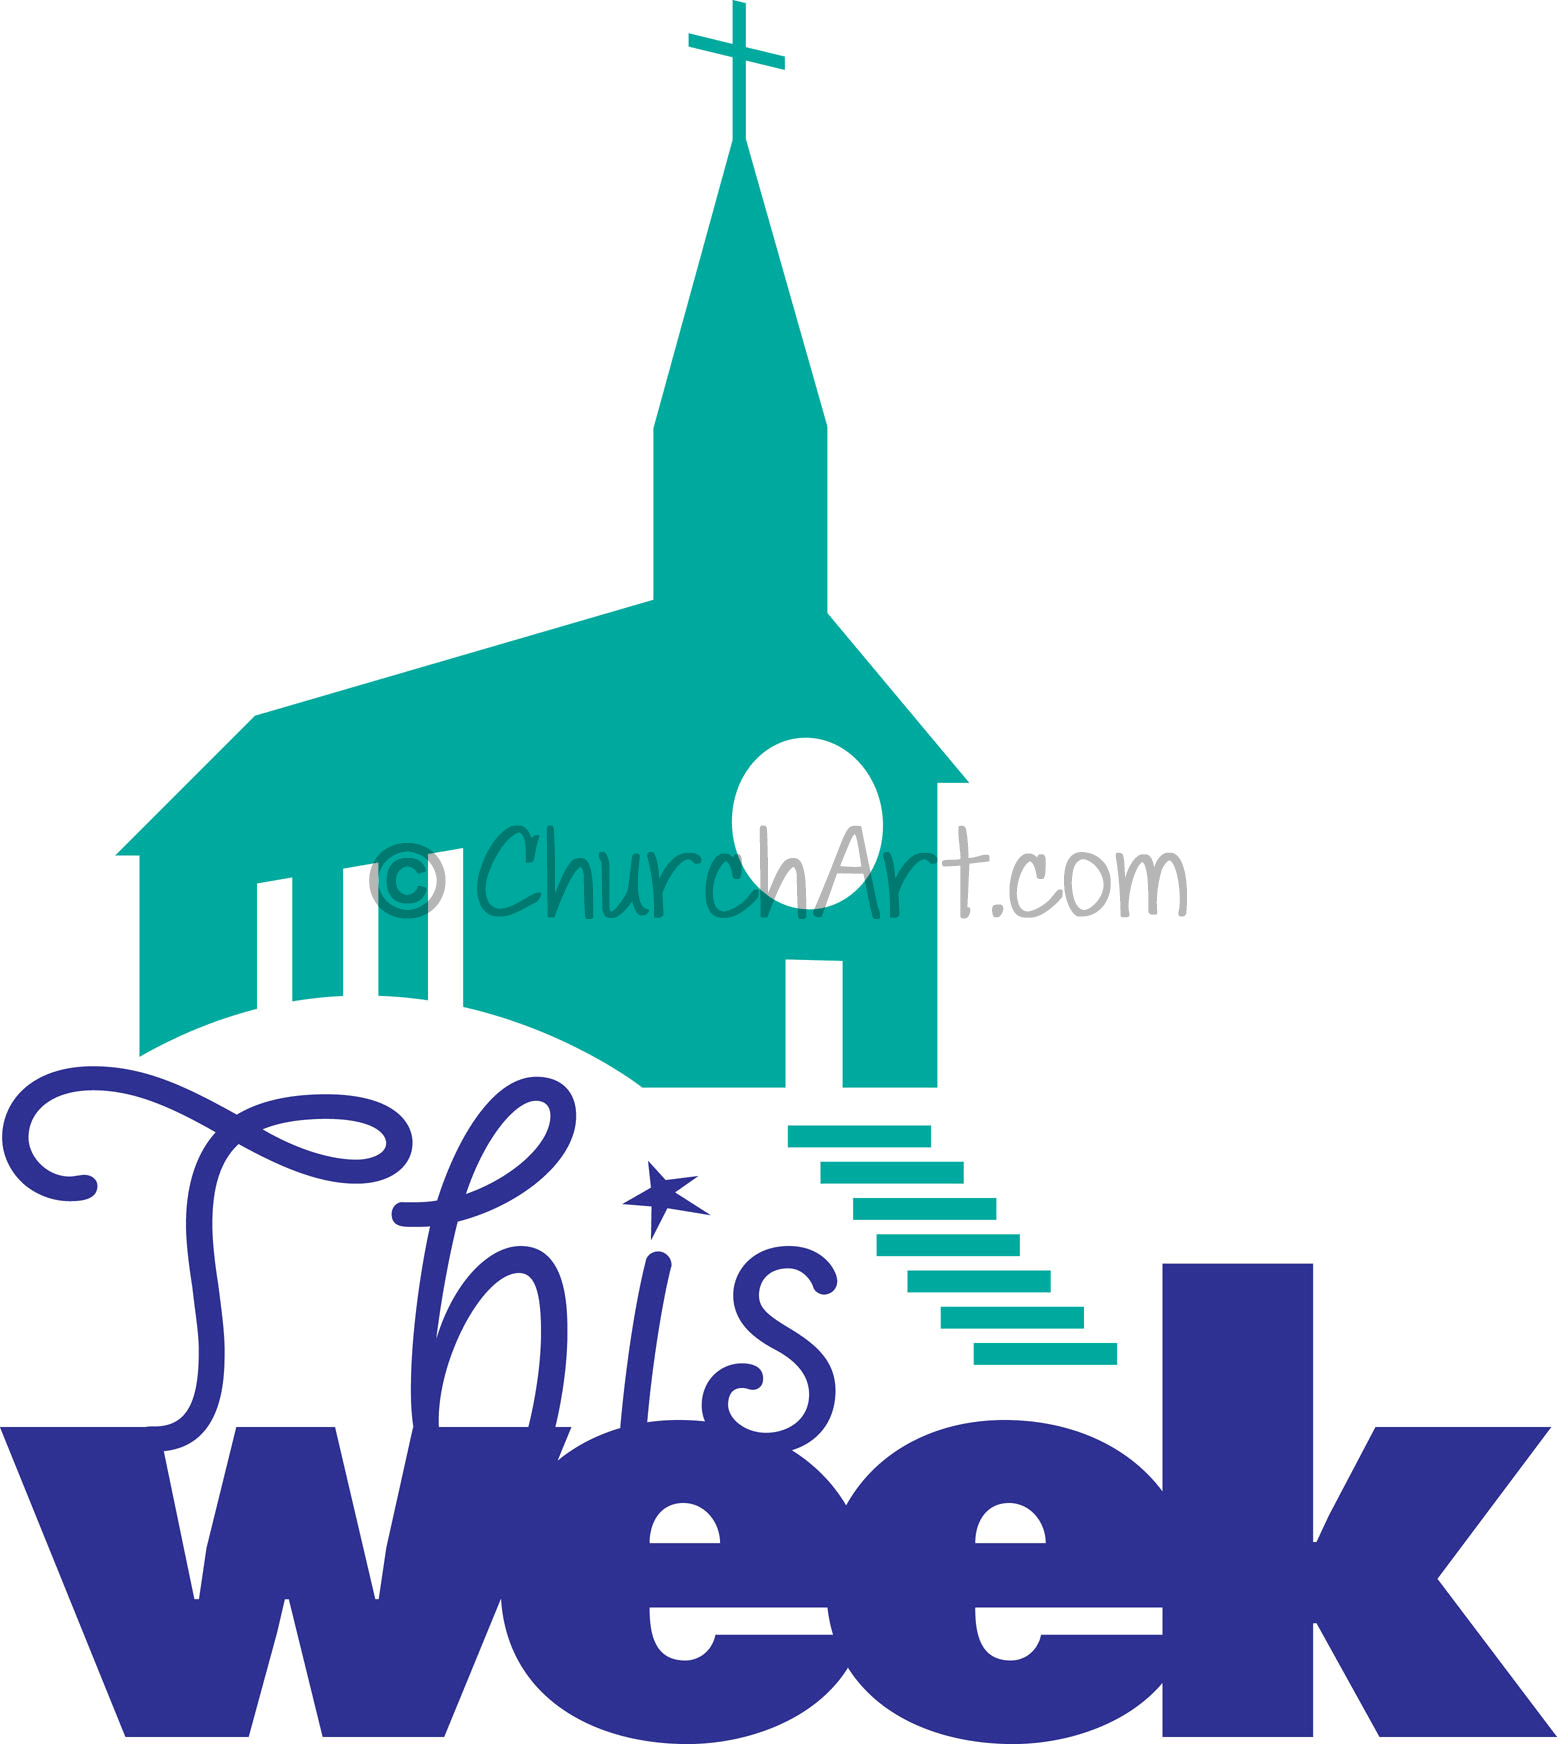 Clipart for upcoming church events this week featuring church with cross and steeple